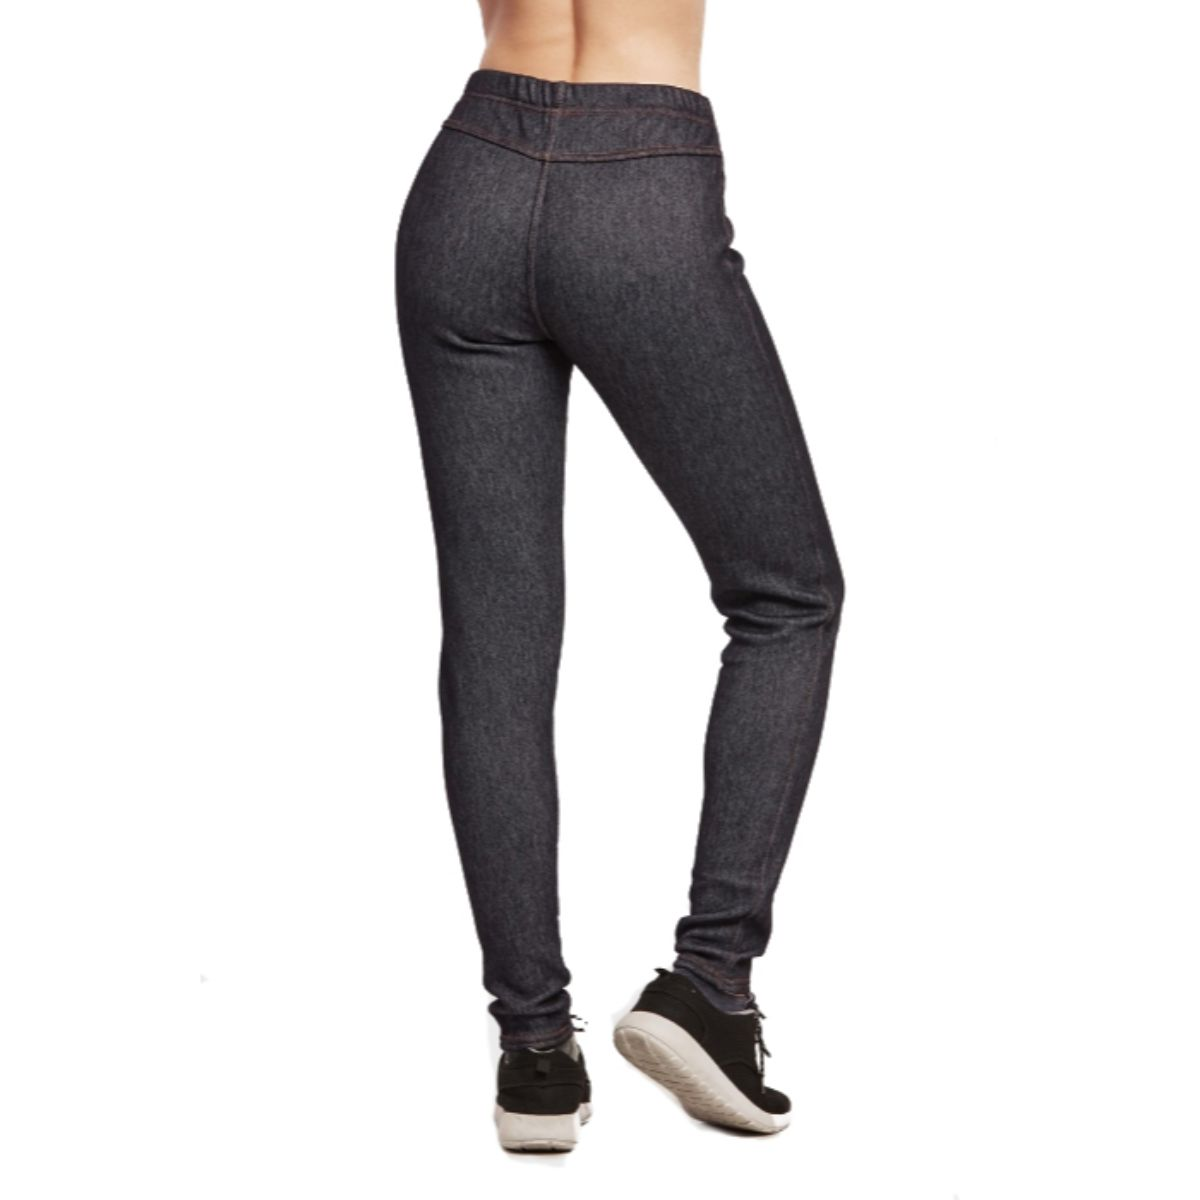 Women's Fleece Lined Jegging Jean Leggings